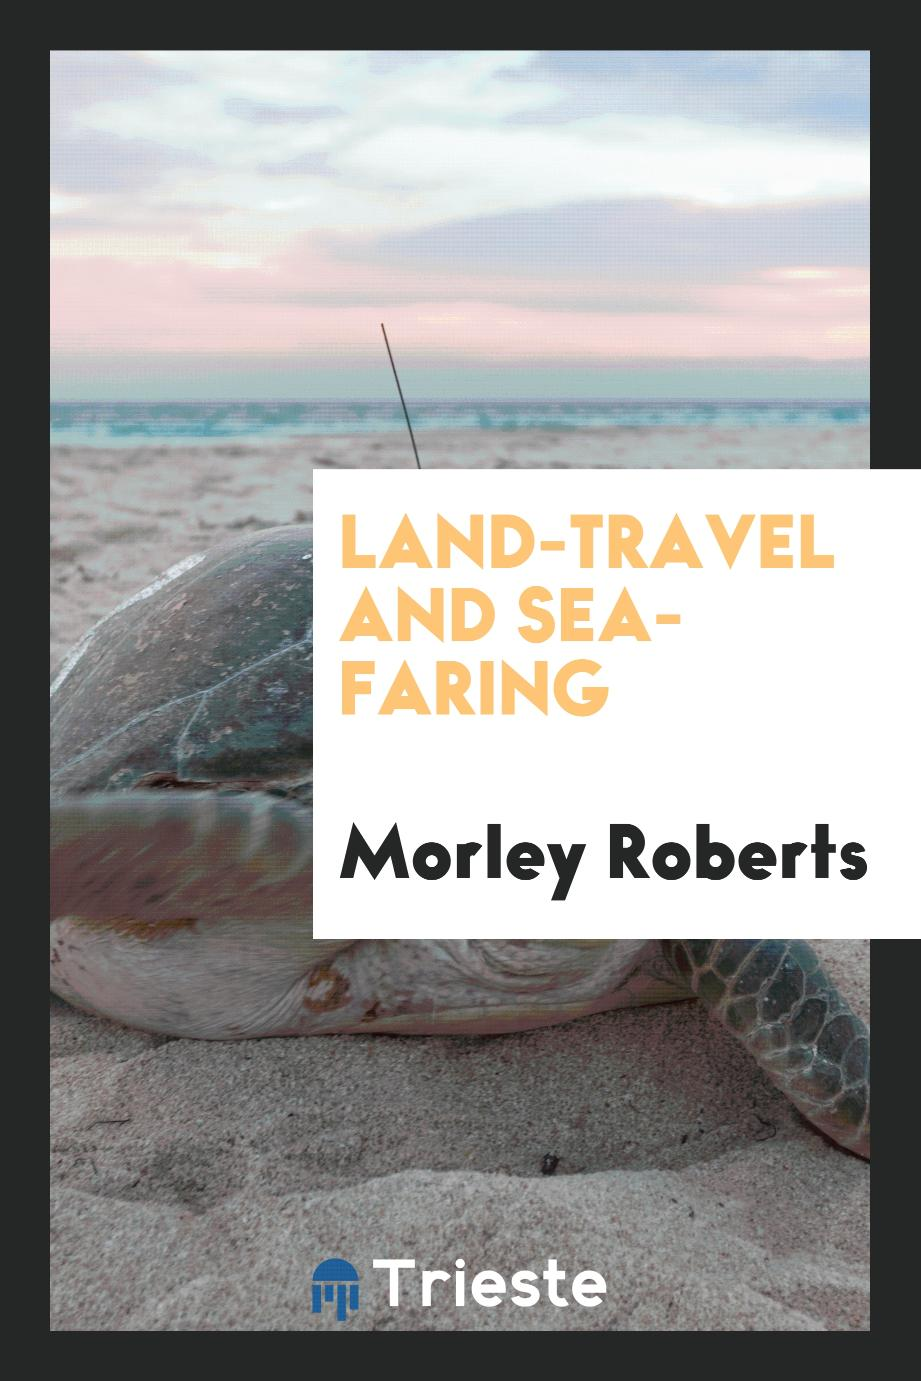 Land-travel and sea-faring